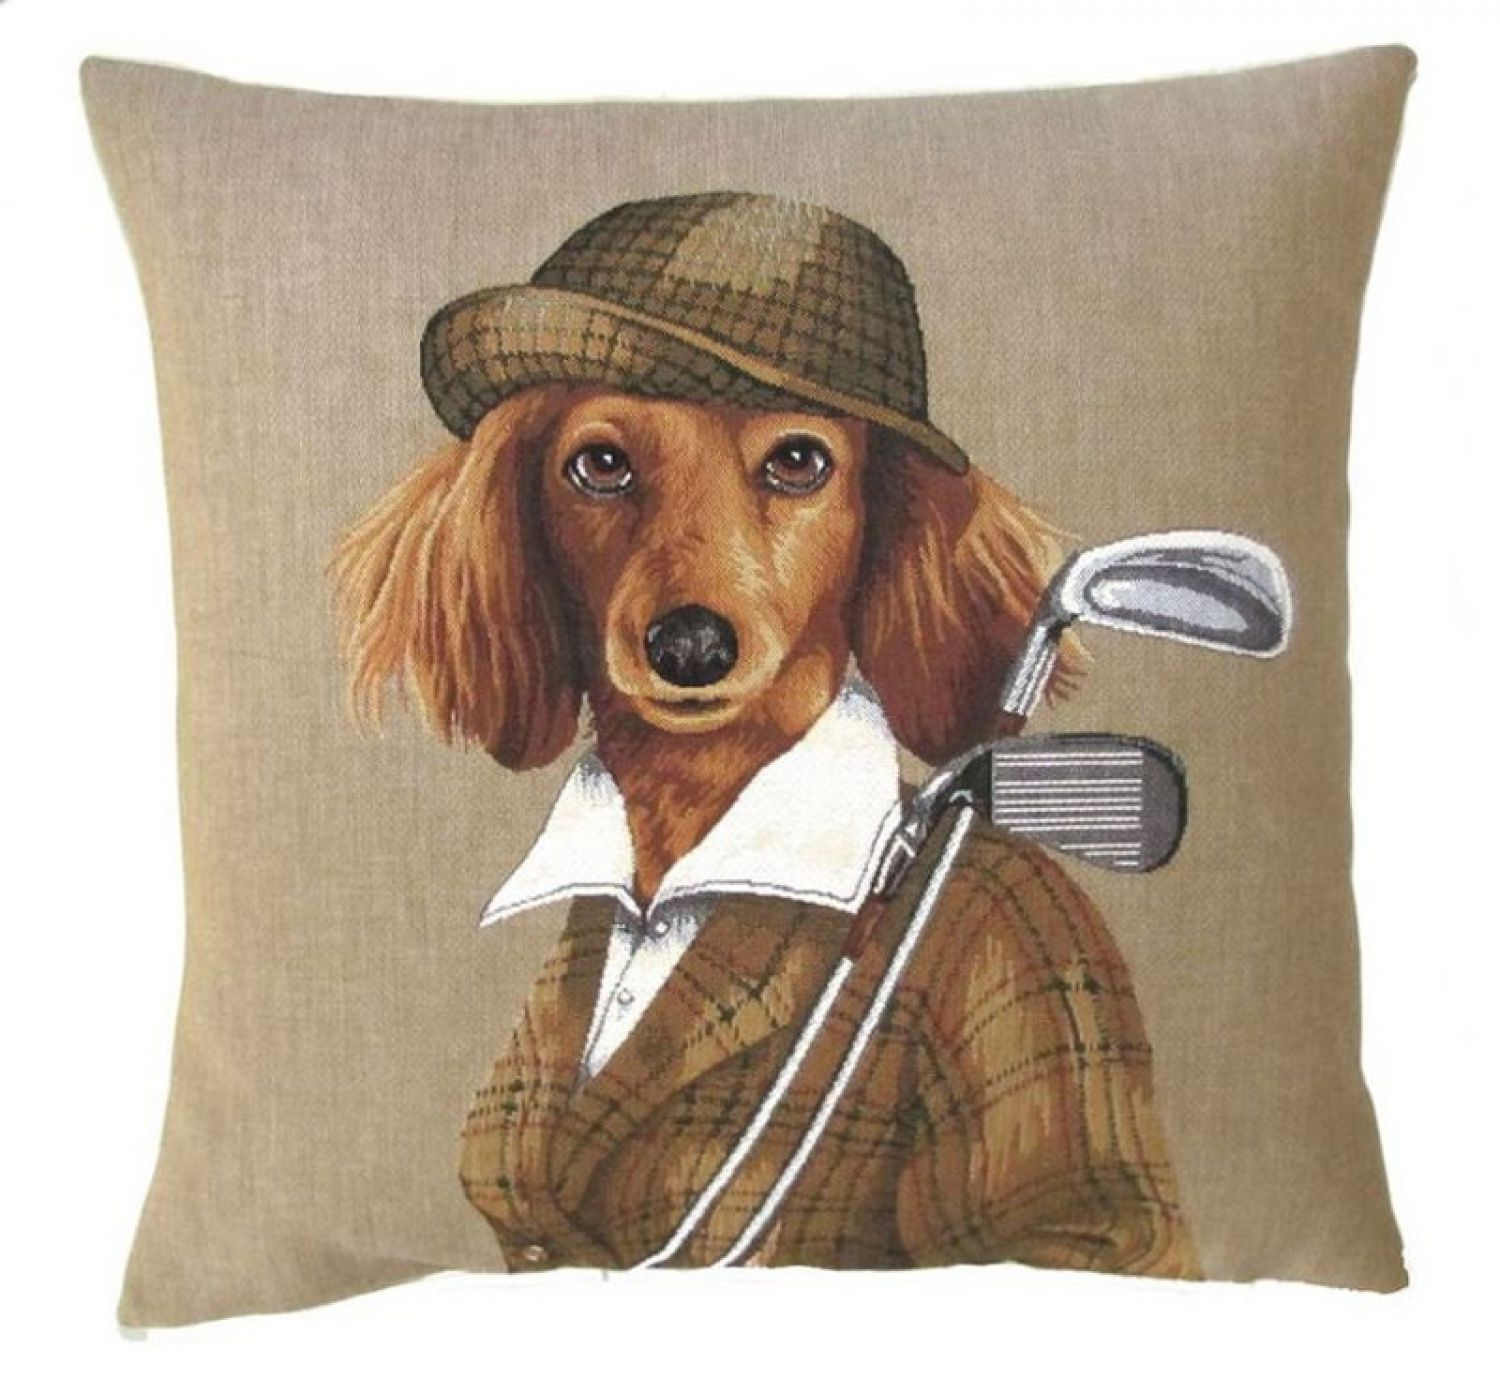 gobelin kissen hund spaniel golf neu dekokissen cocker landhausstil ebay. Black Bedroom Furniture Sets. Home Design Ideas